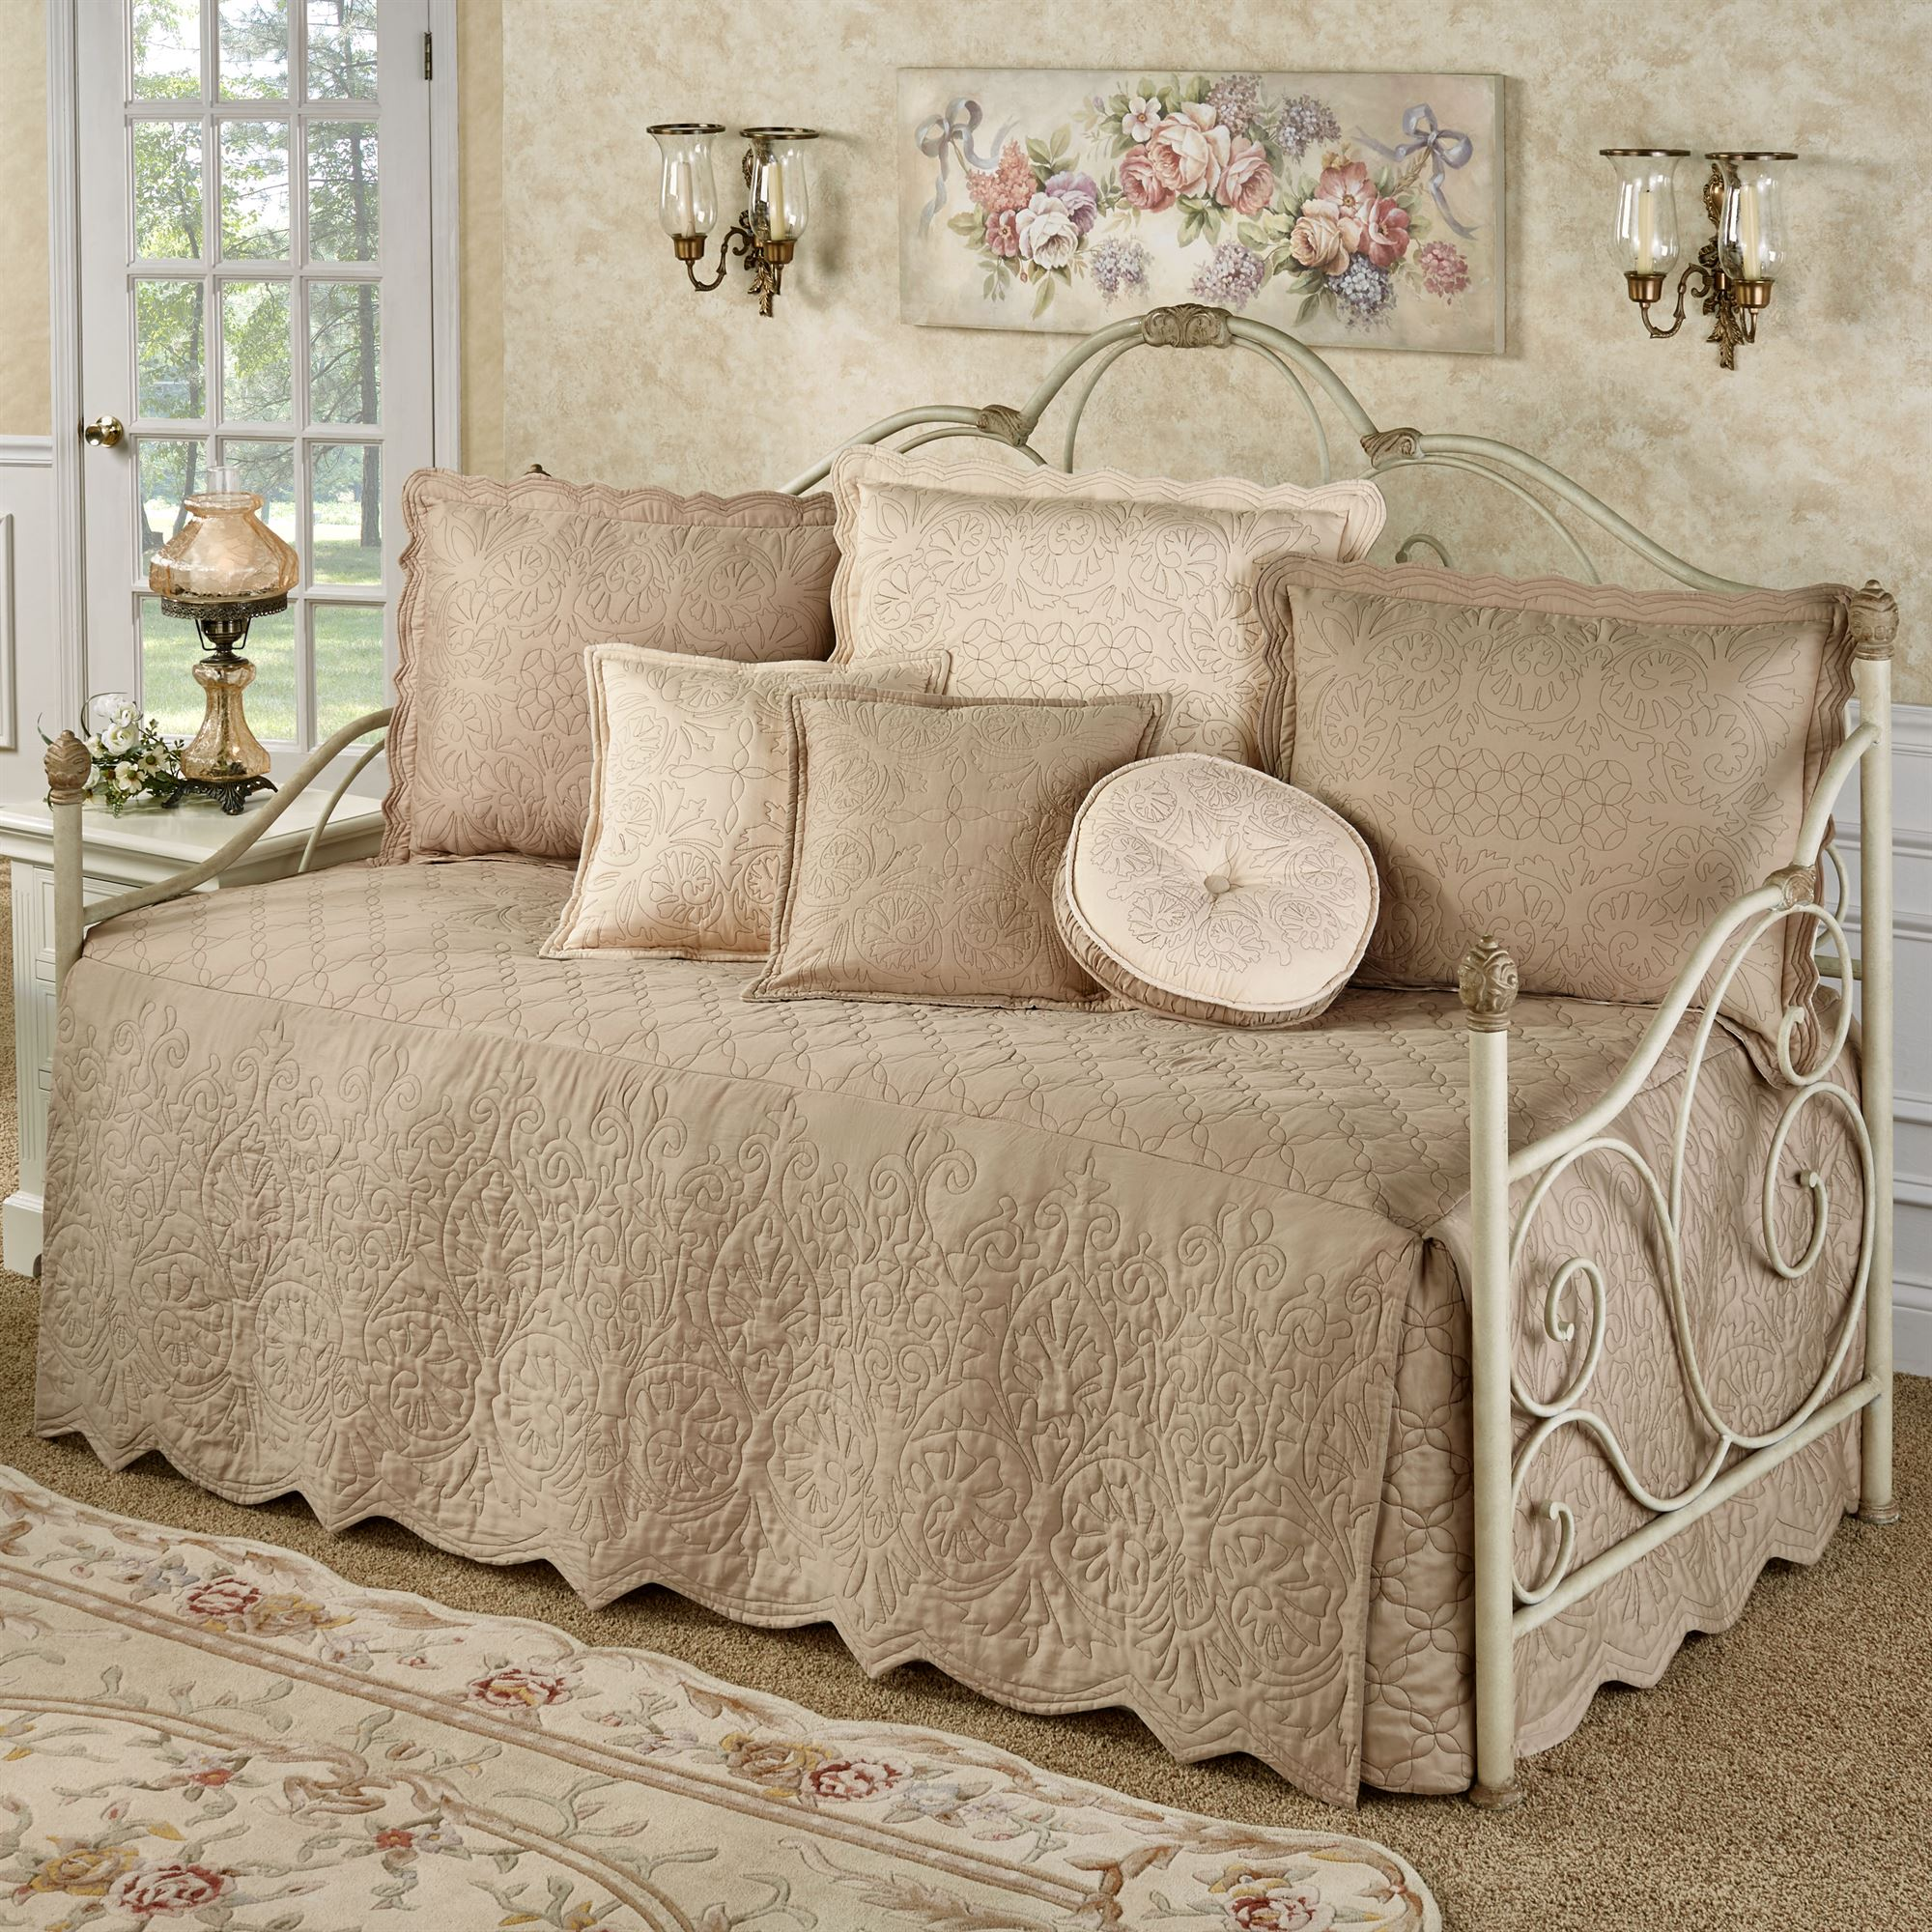 Everafter Almond Quilted Daybed Bedding Set